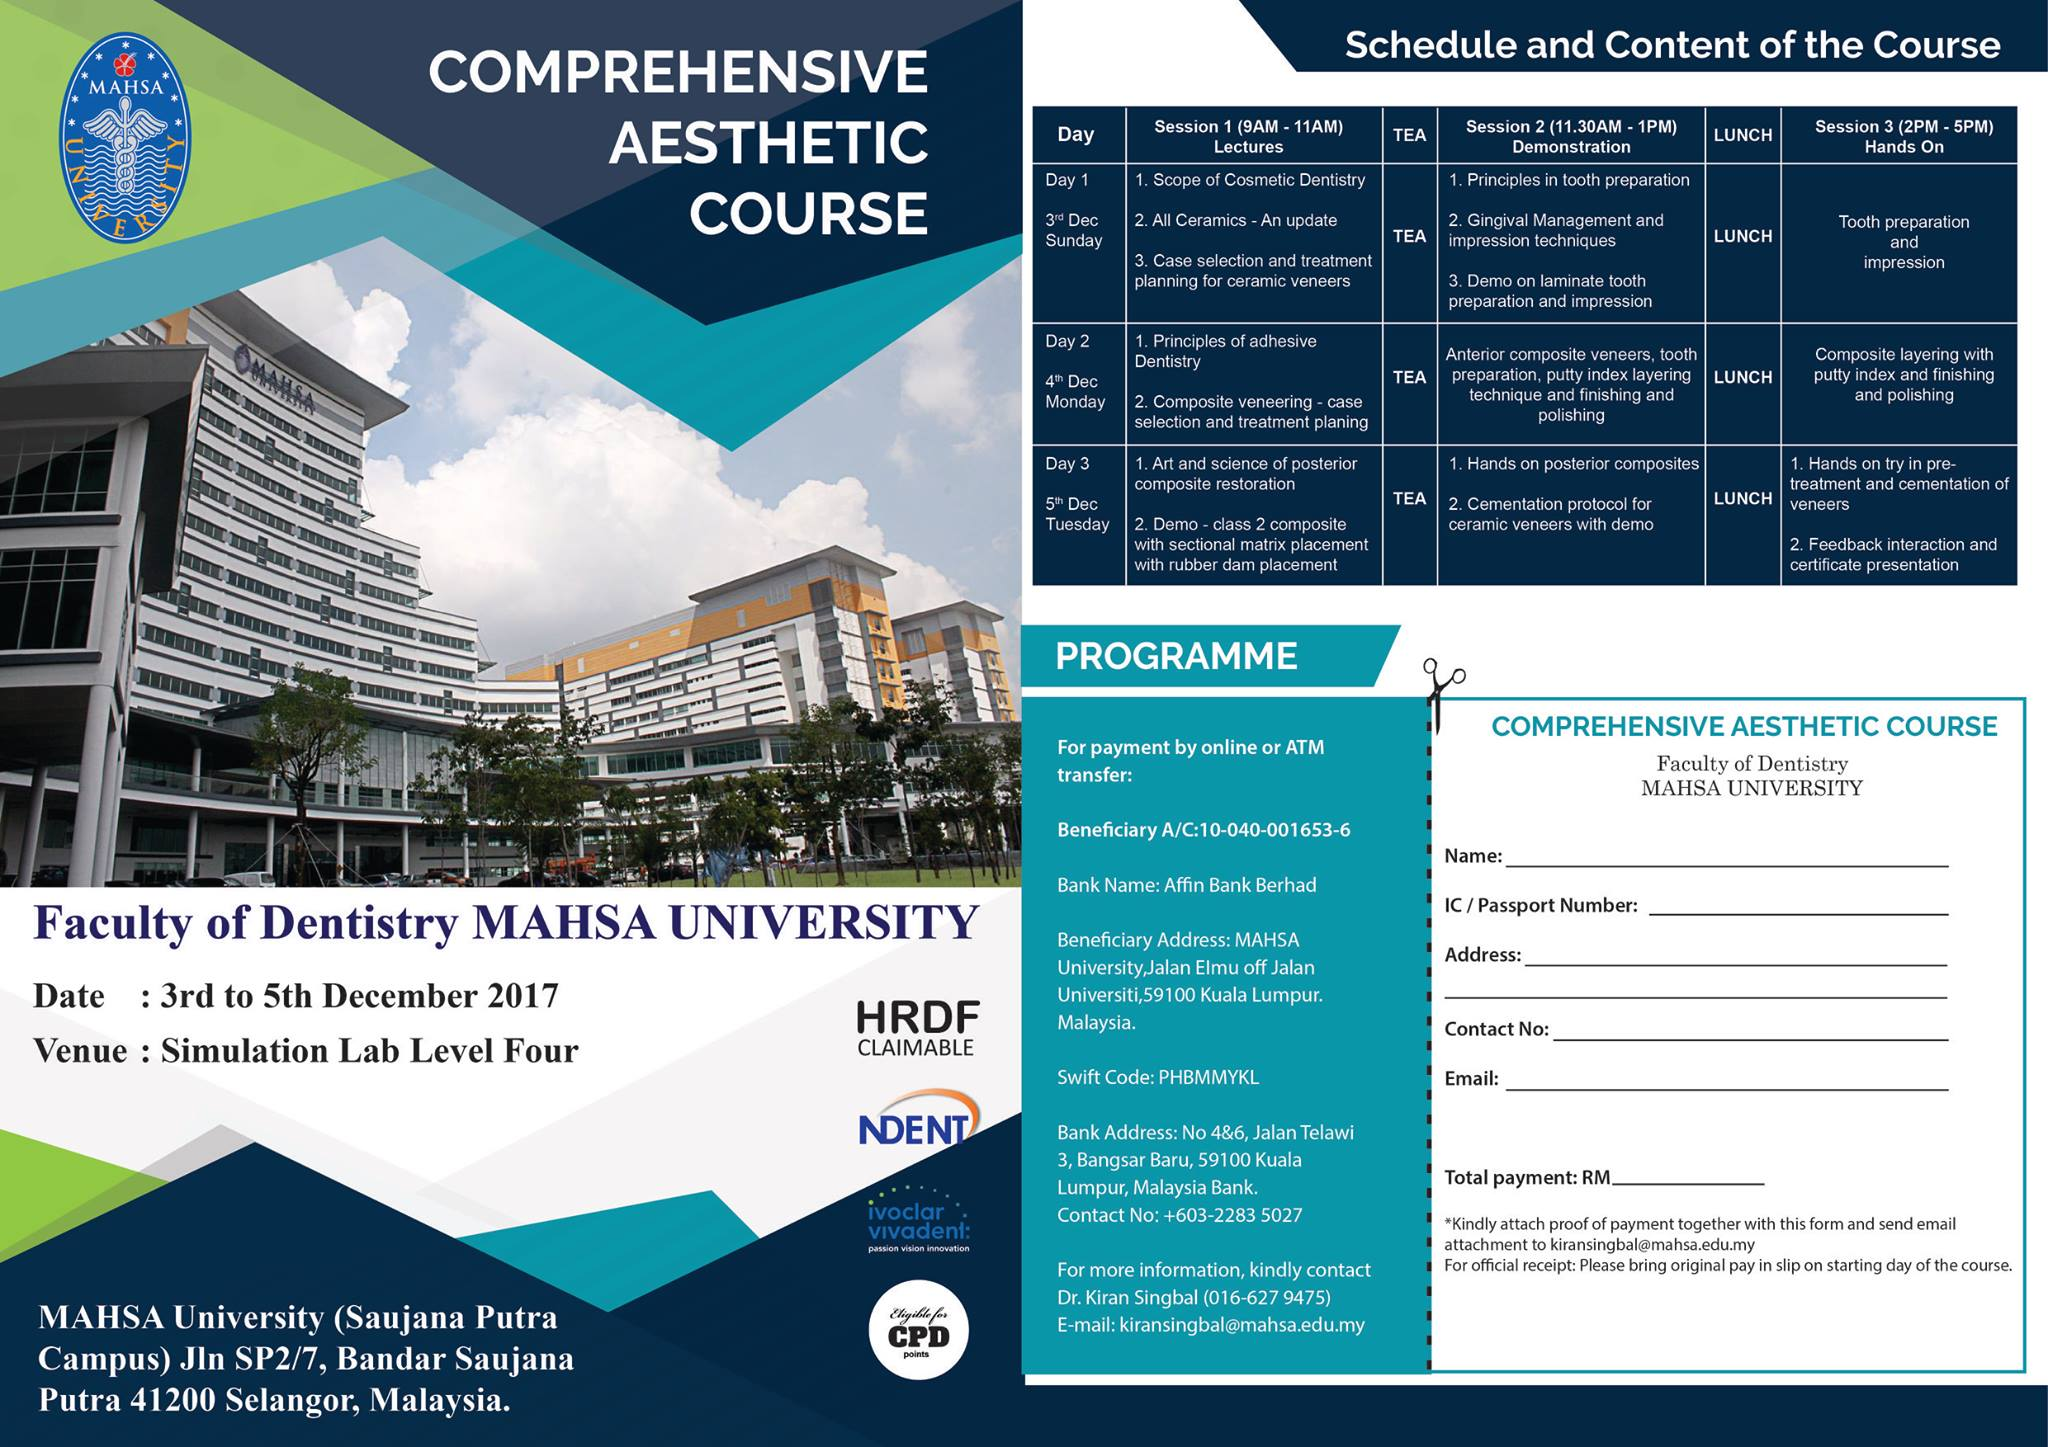 mahsa-university-dental-aesthetic-course-1